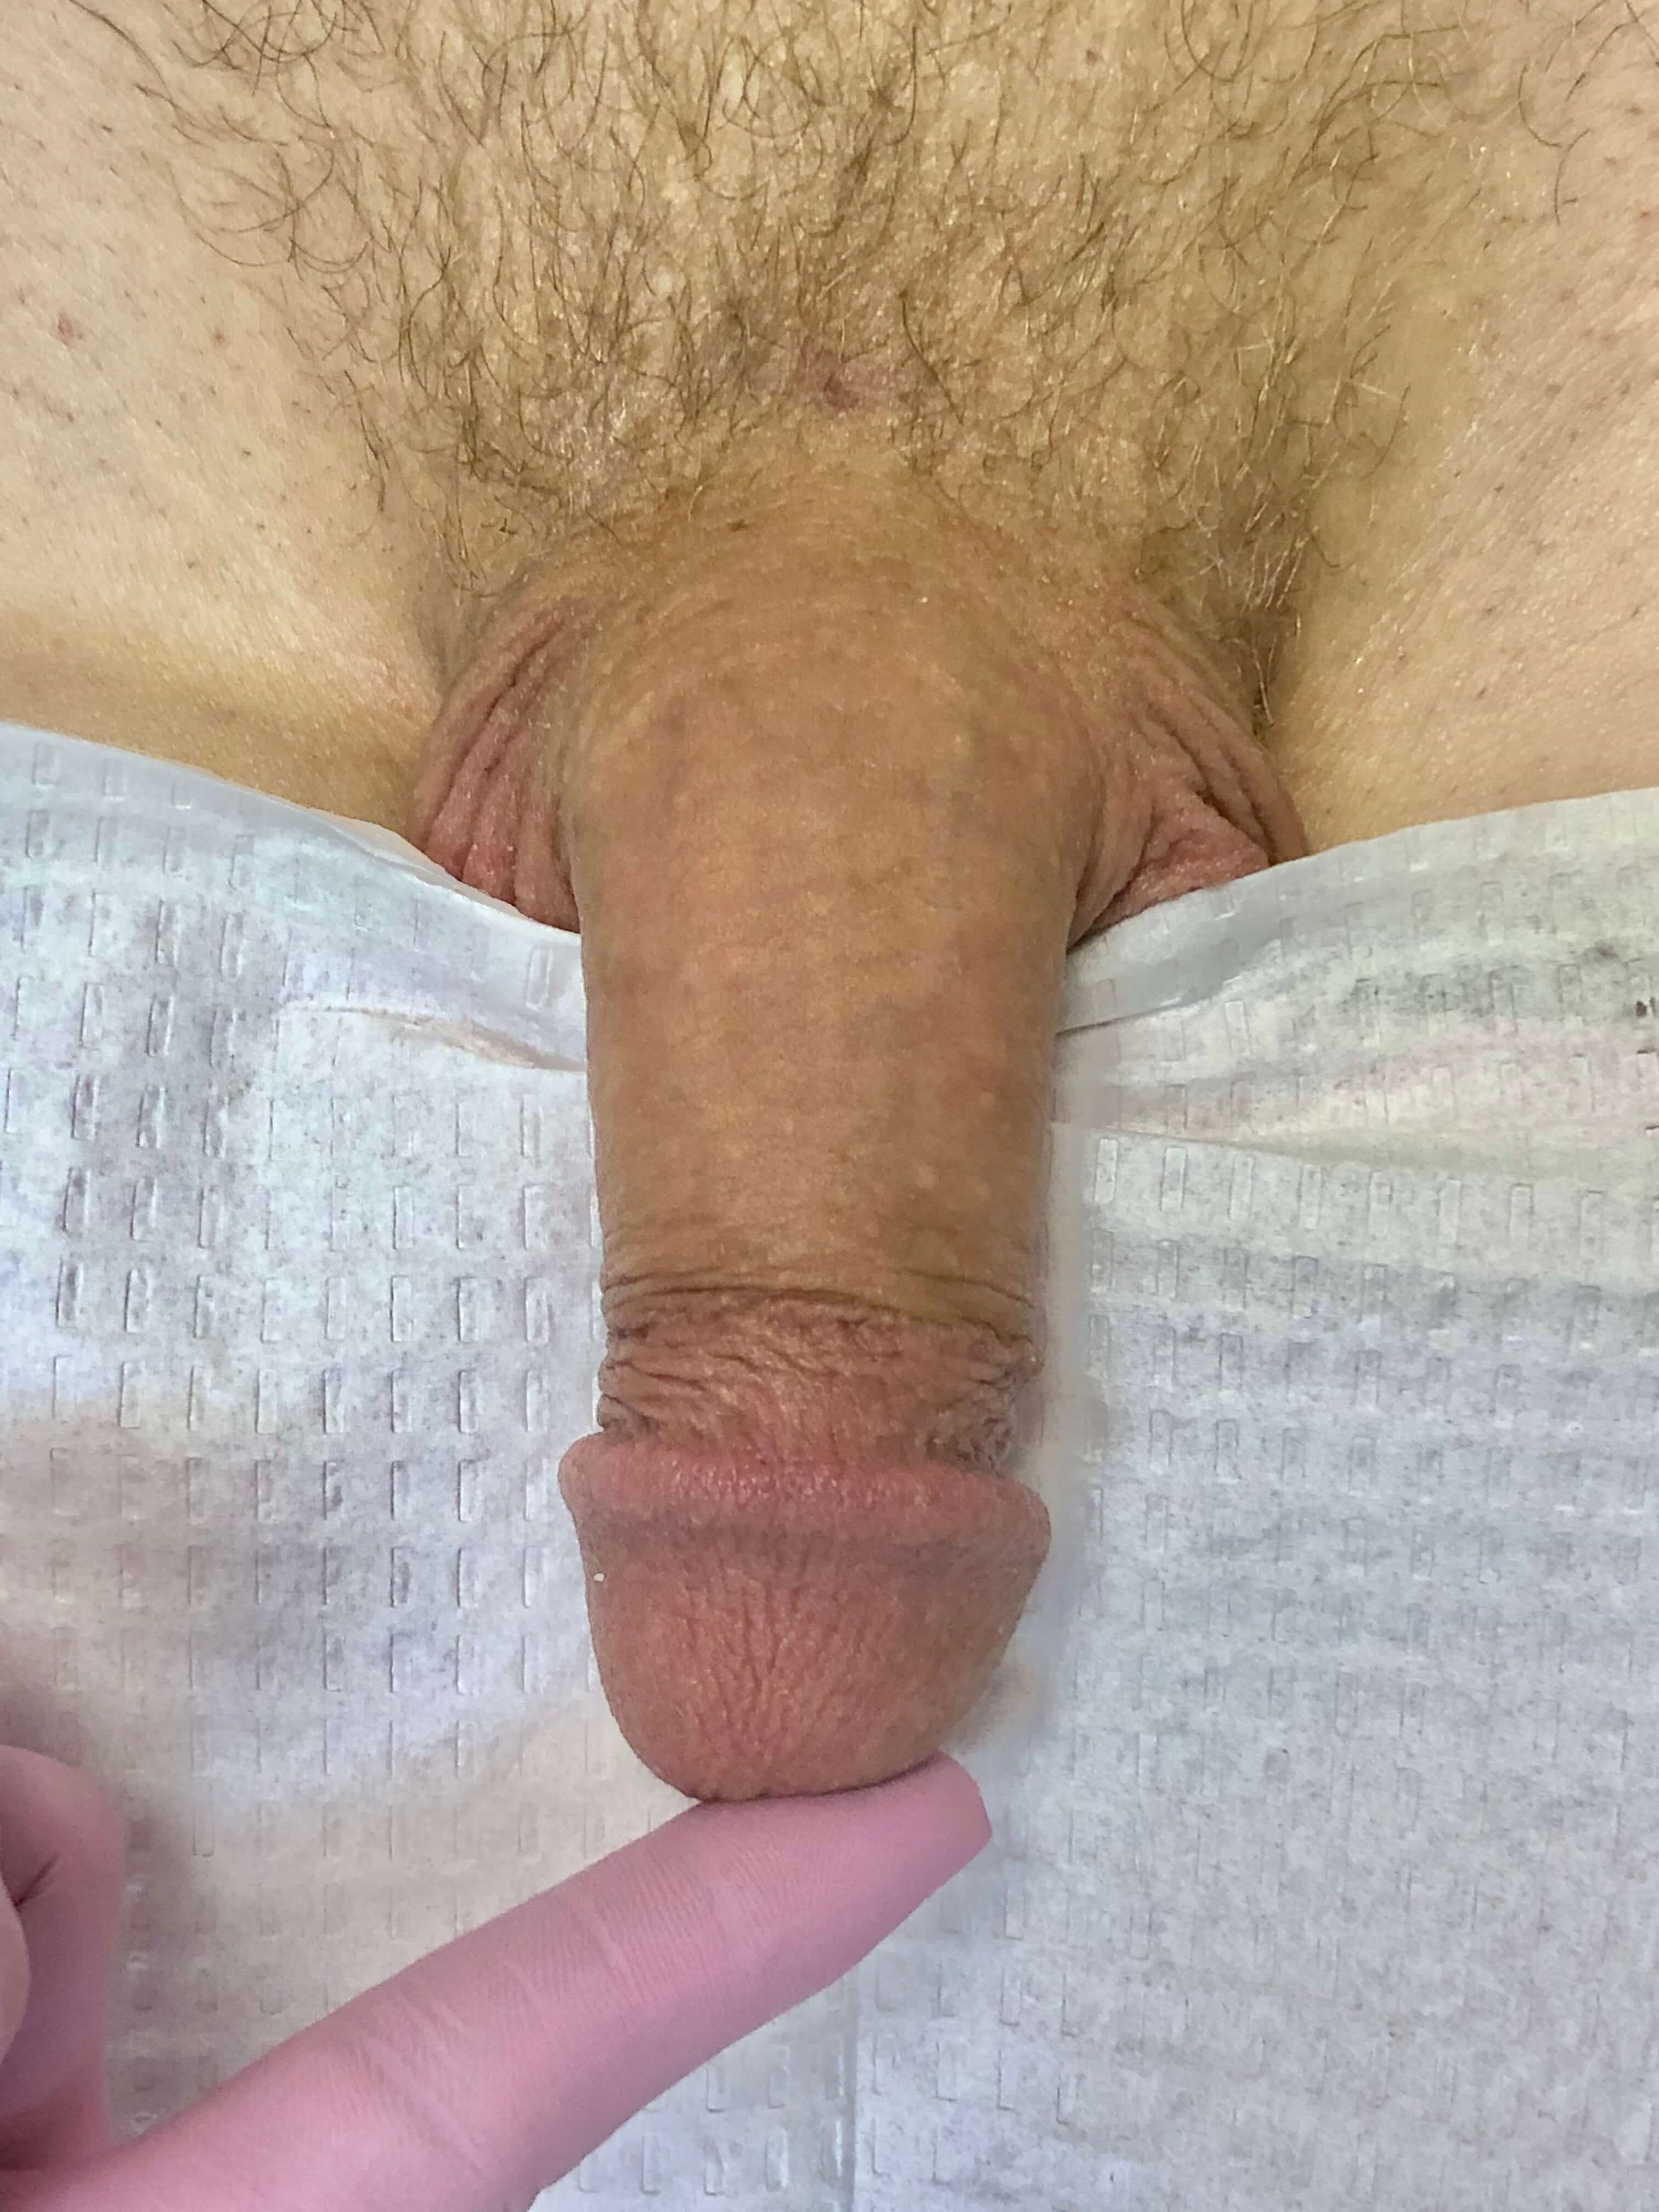 Male Enhancement with Fillers Before - Male Enhancement with Filler